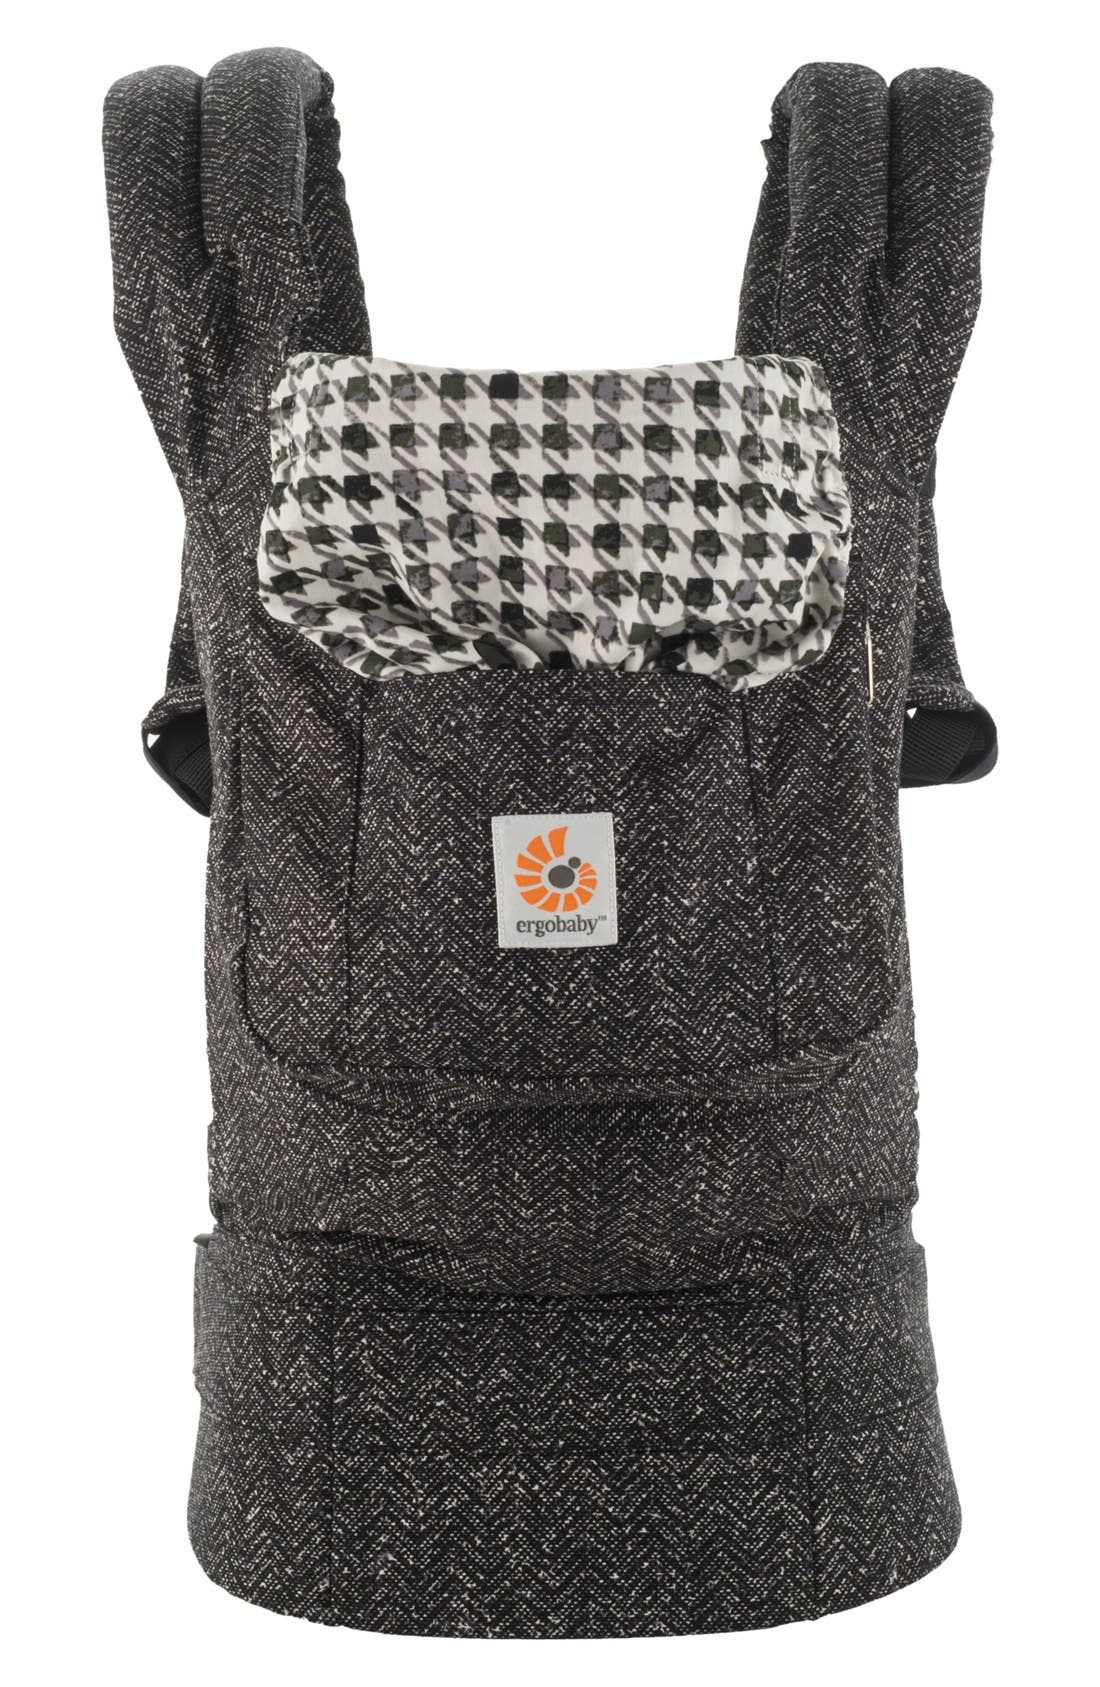 Infant Ergobaby Original Cotton Baby Carrier Size One Size  Black